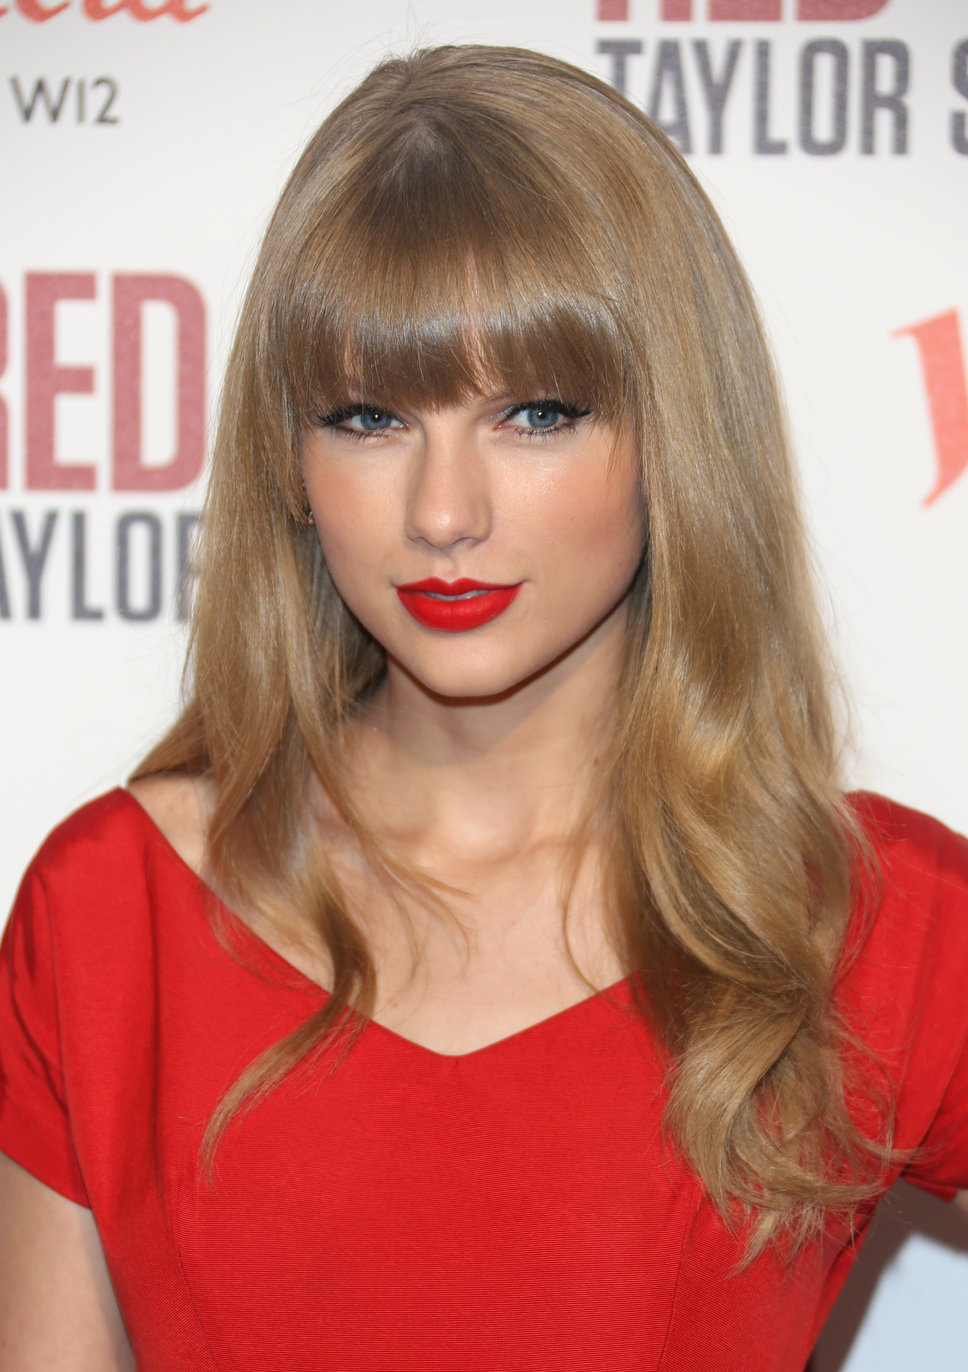 taylor_swift_red_dress_red_lip